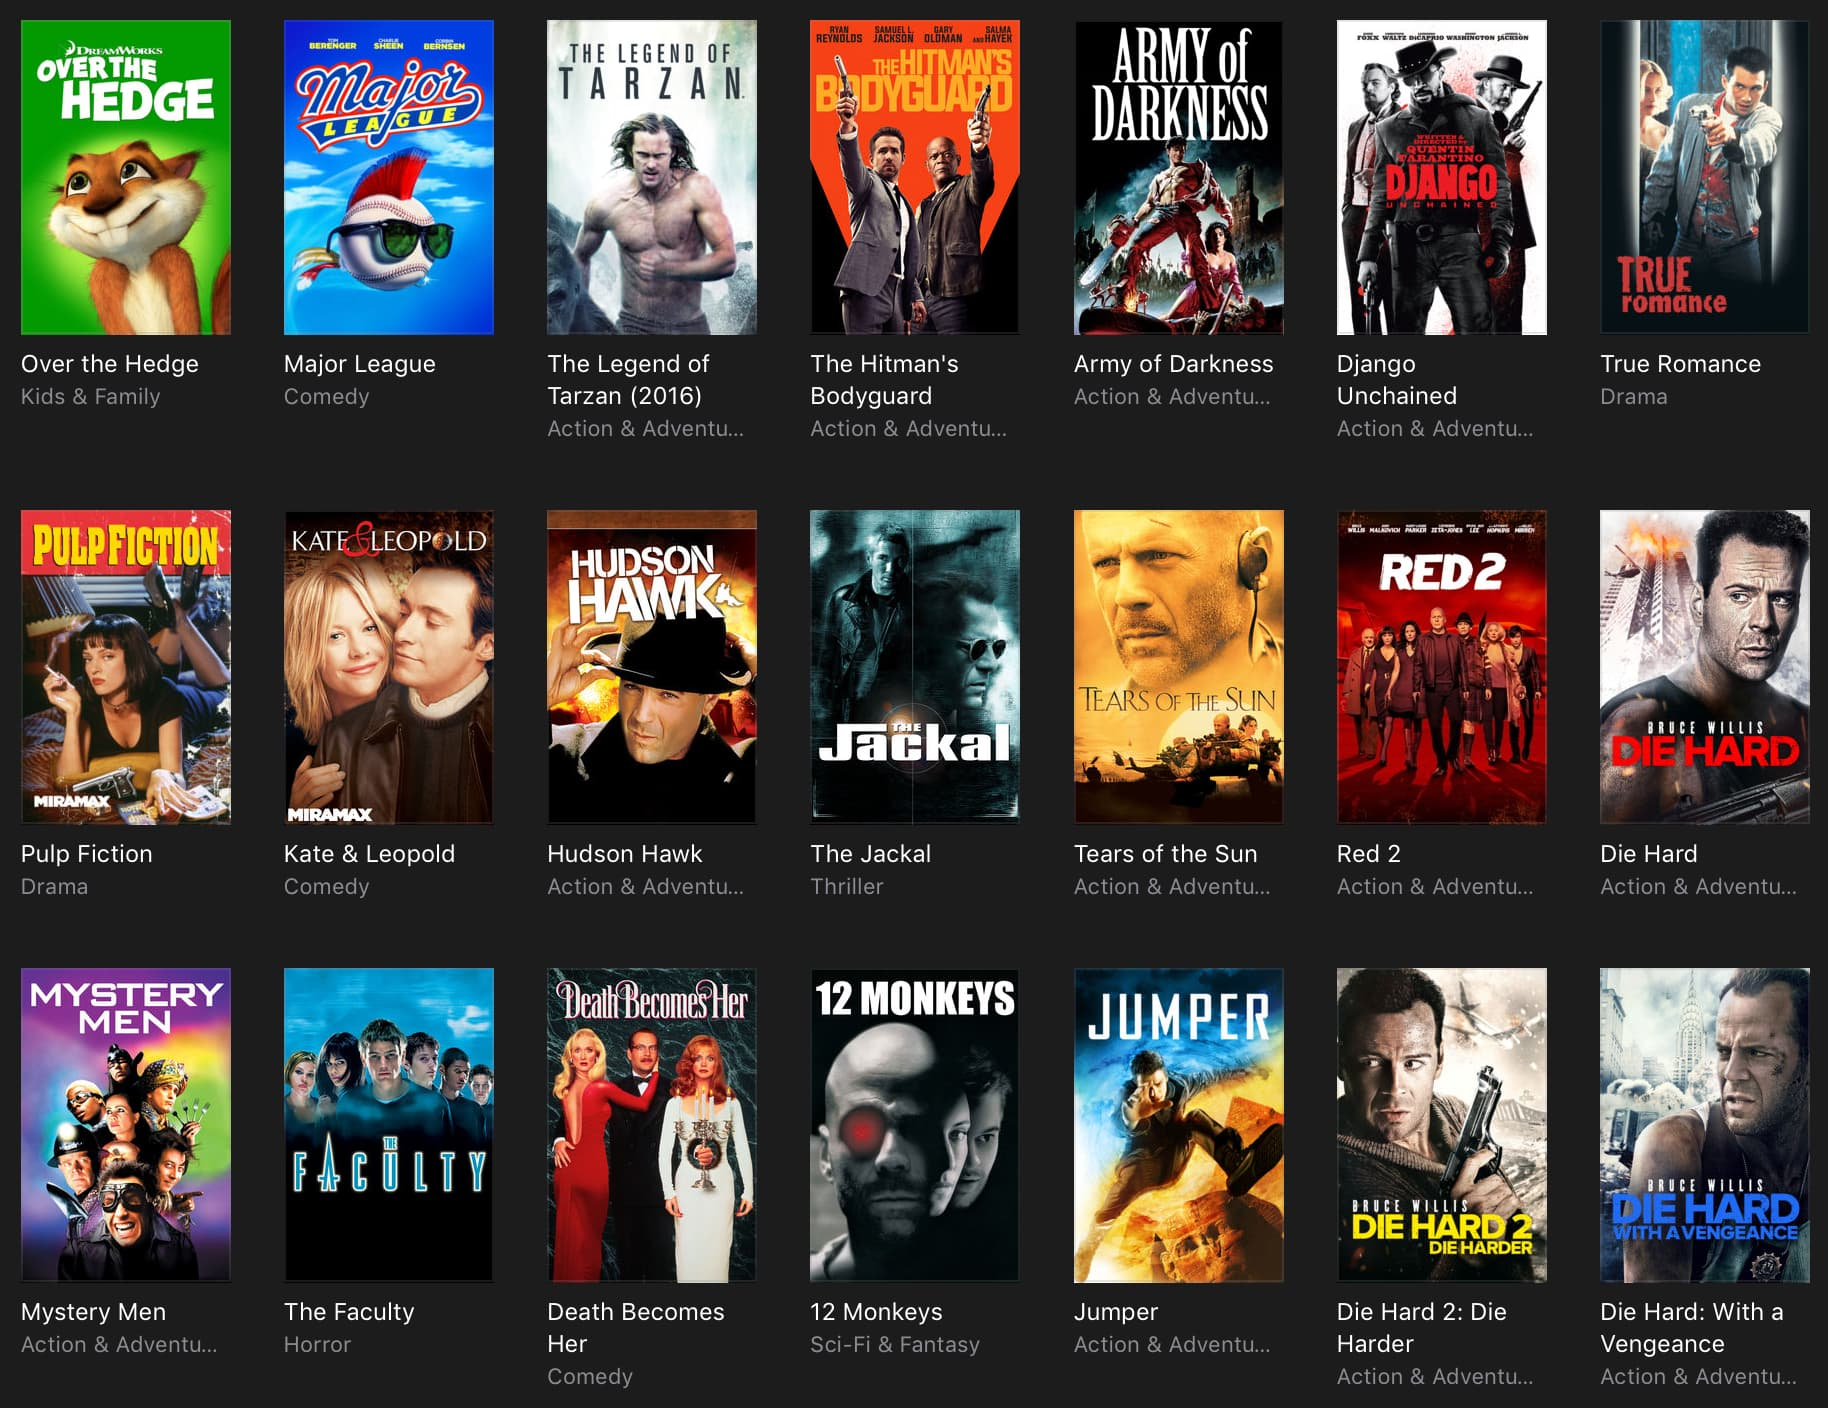 iTunes movie deals: recent releases under $10, $5 classics, and much more